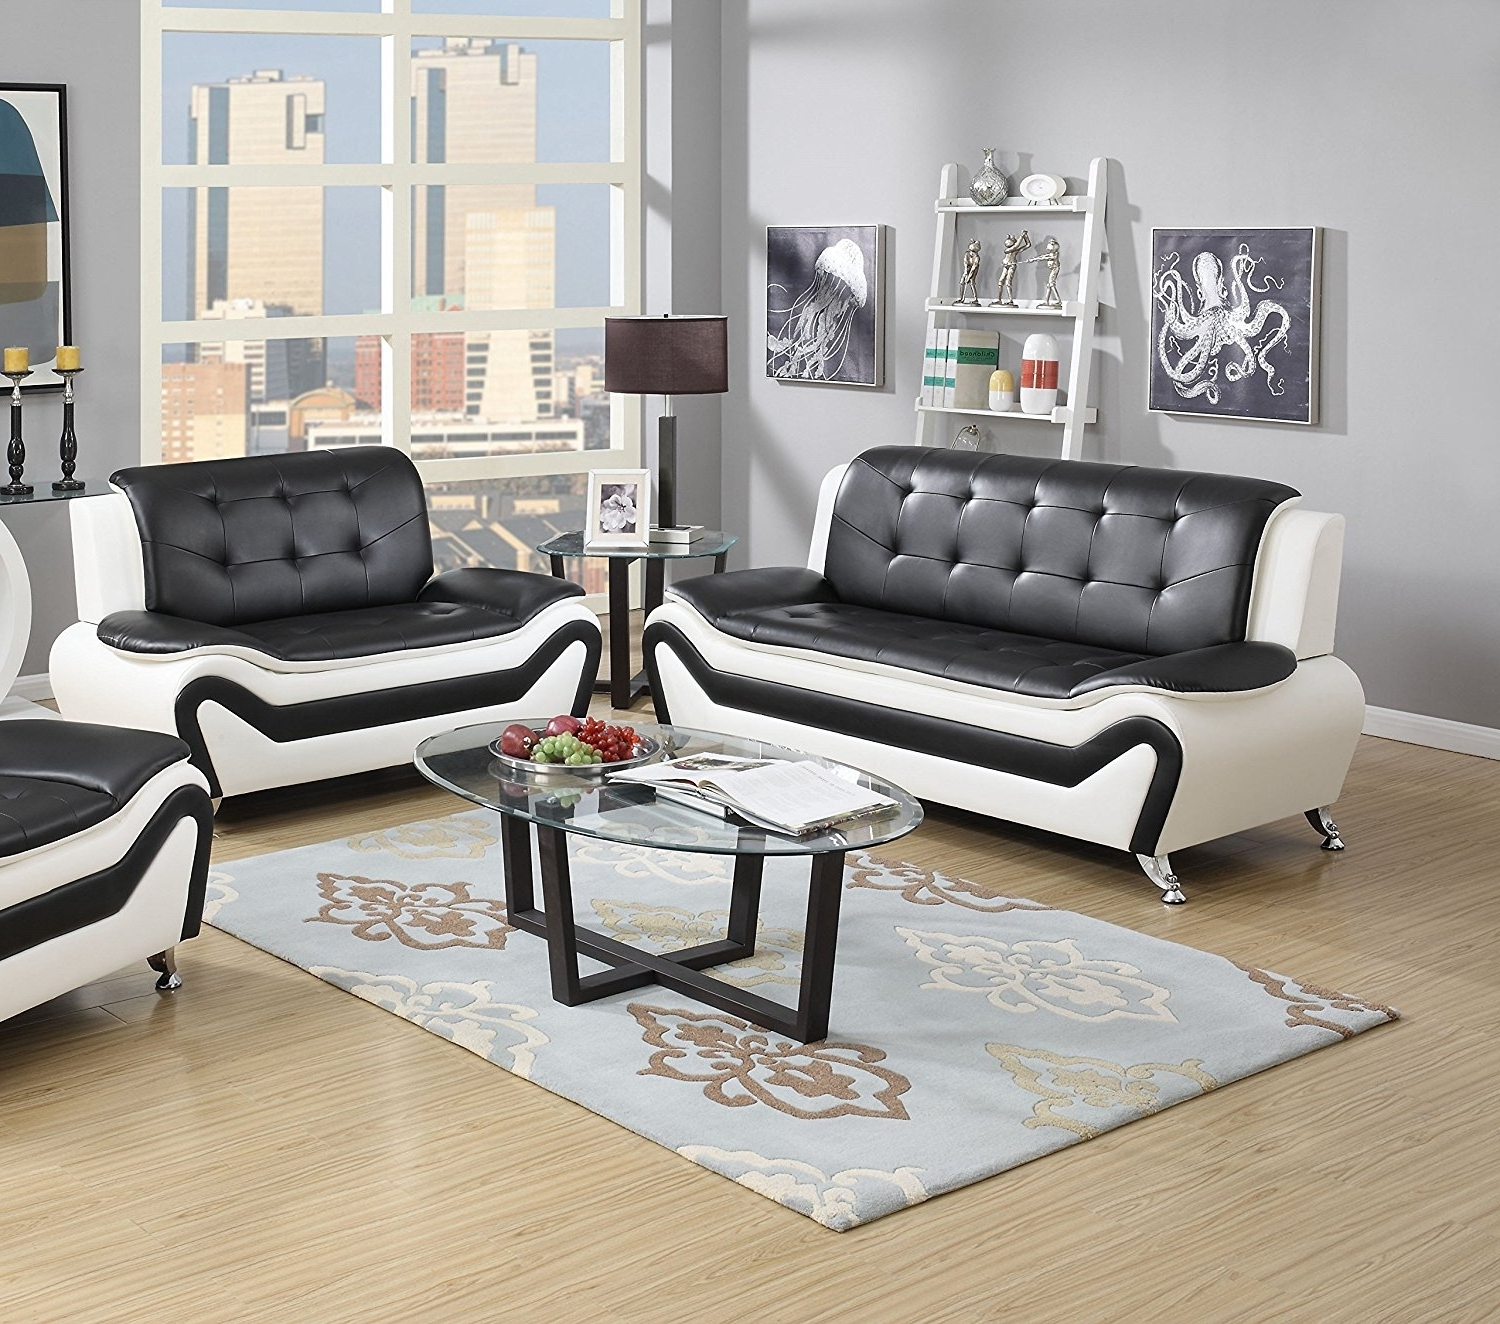 Black And White Sofas With Well Known Amazon: Us Pride Furniture 2 Piece Modern Bonded Leather Sofa (View 10 of 15)